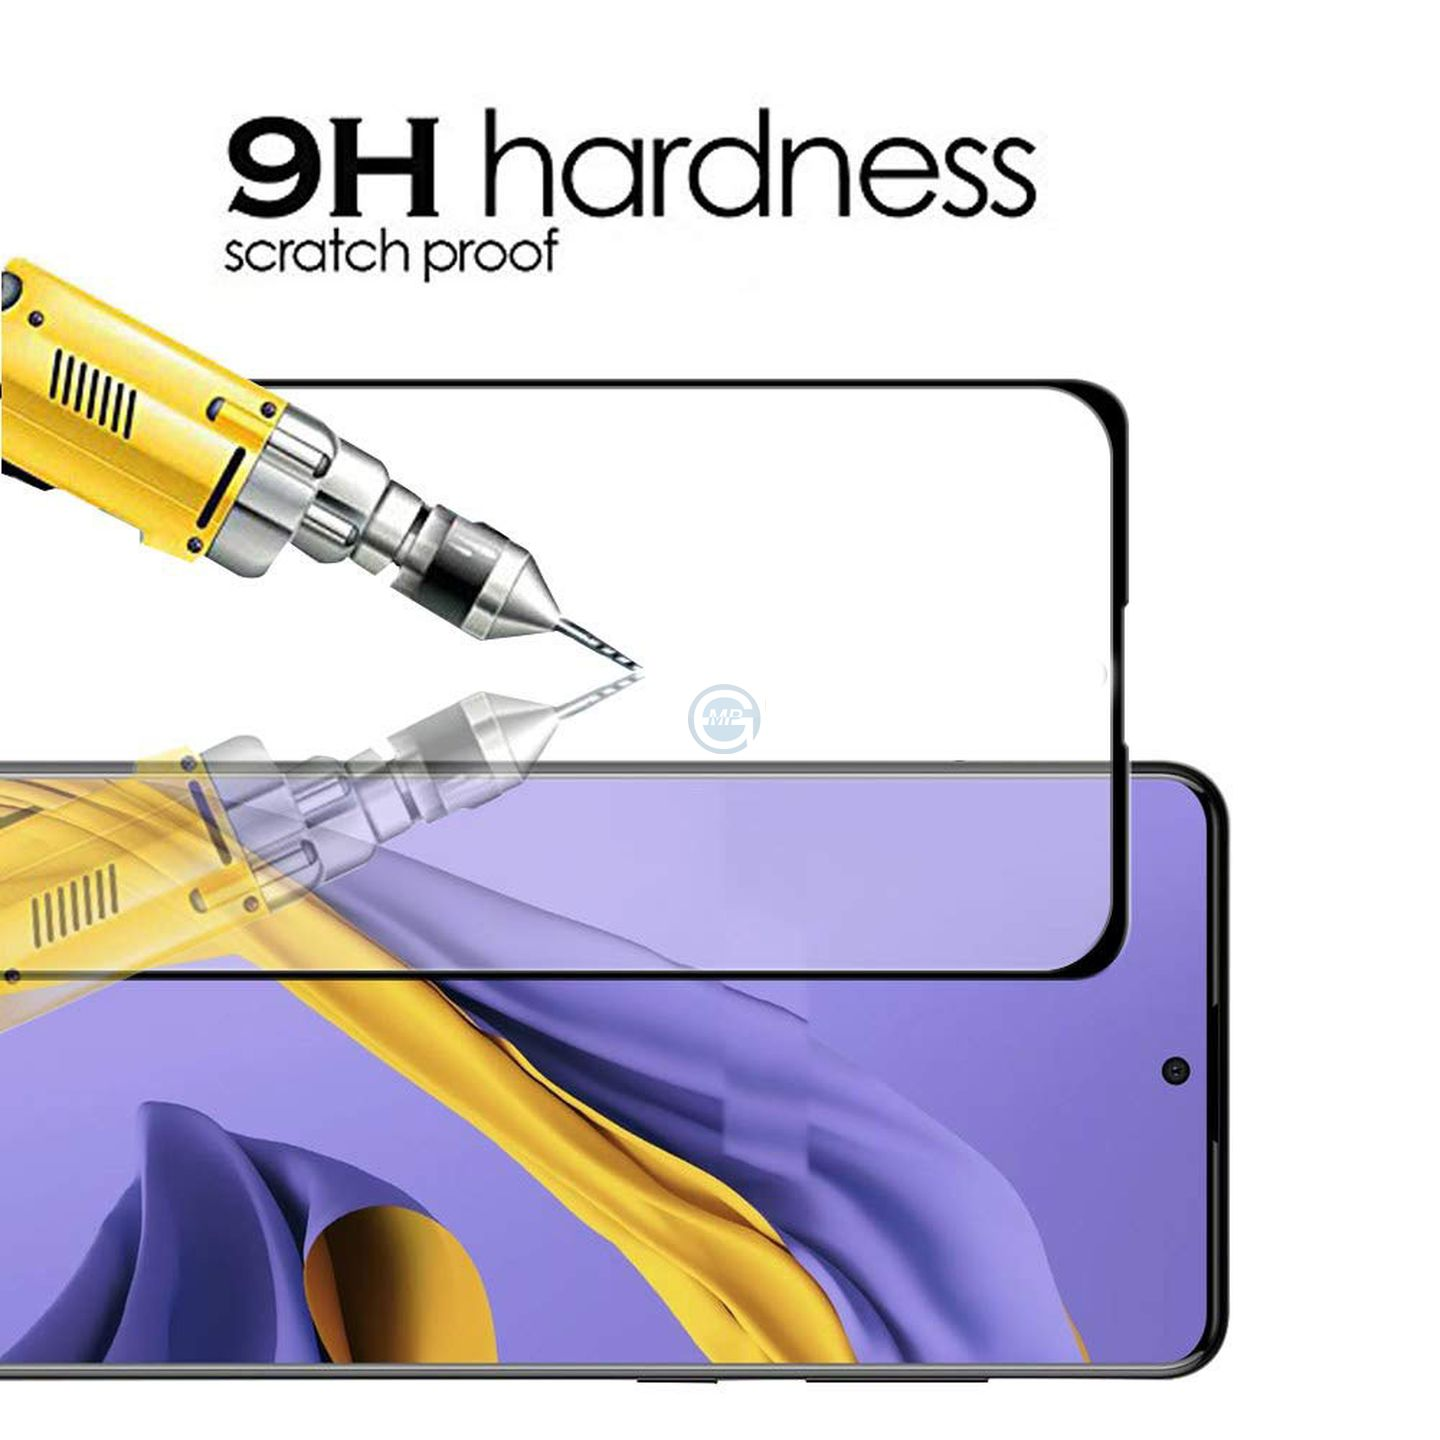 Hardness gives Endurance to Tempered Glass and More